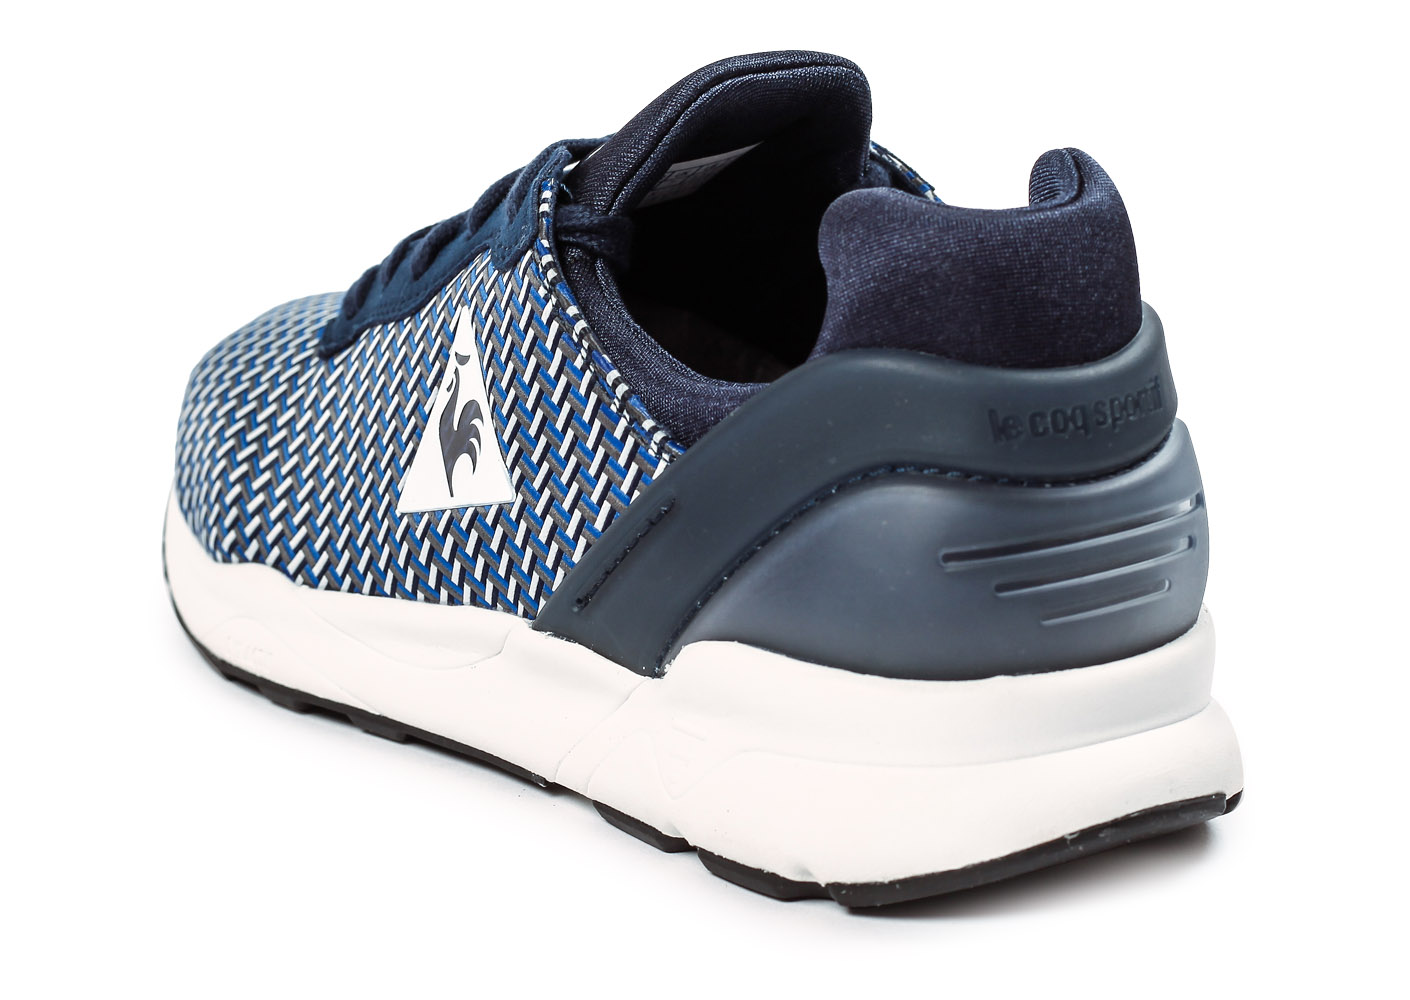 Chaussures Coq Sportif 2017